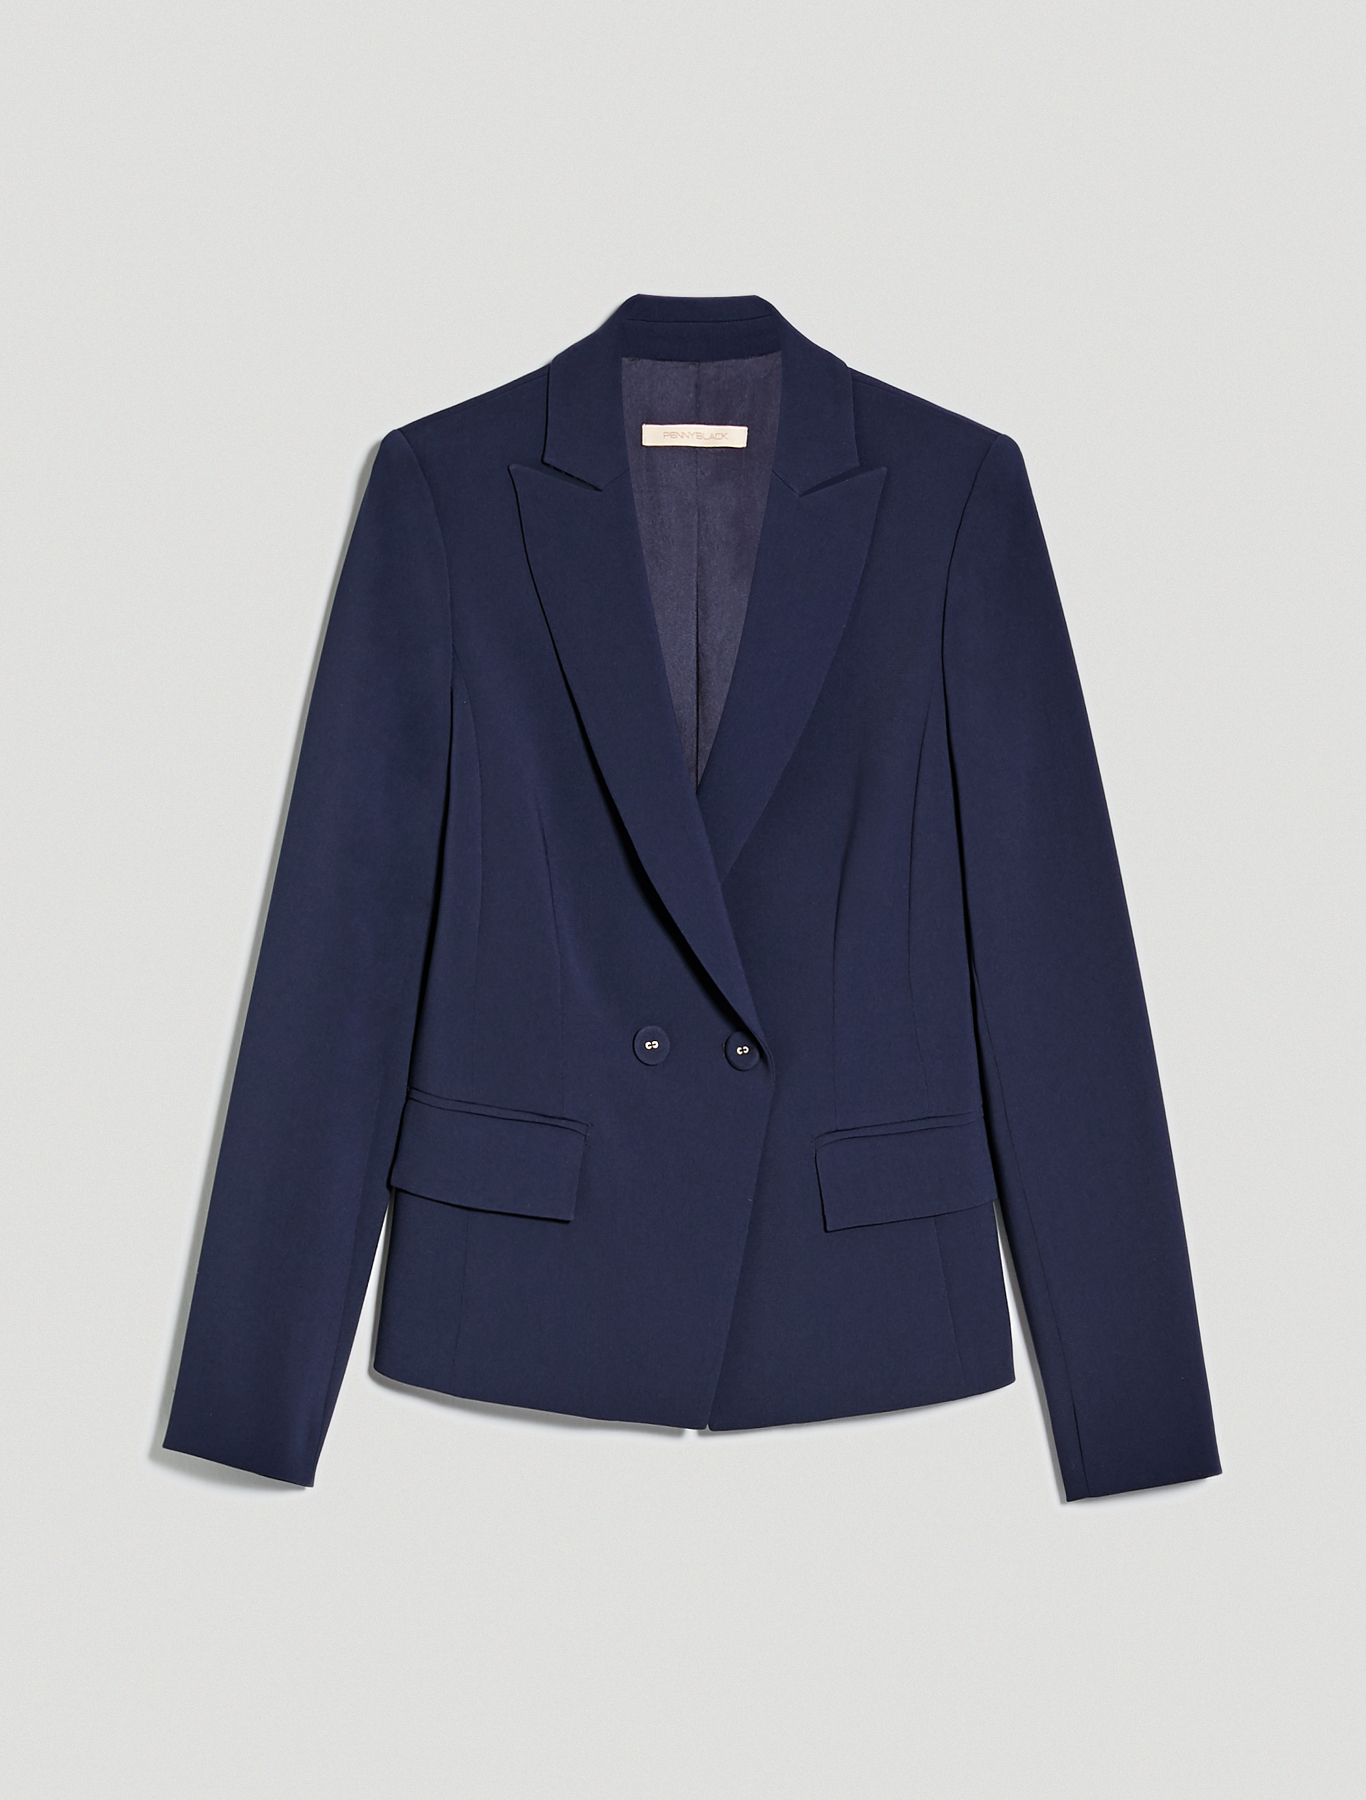 Slim two-button blazer - navy blue - pennyblack